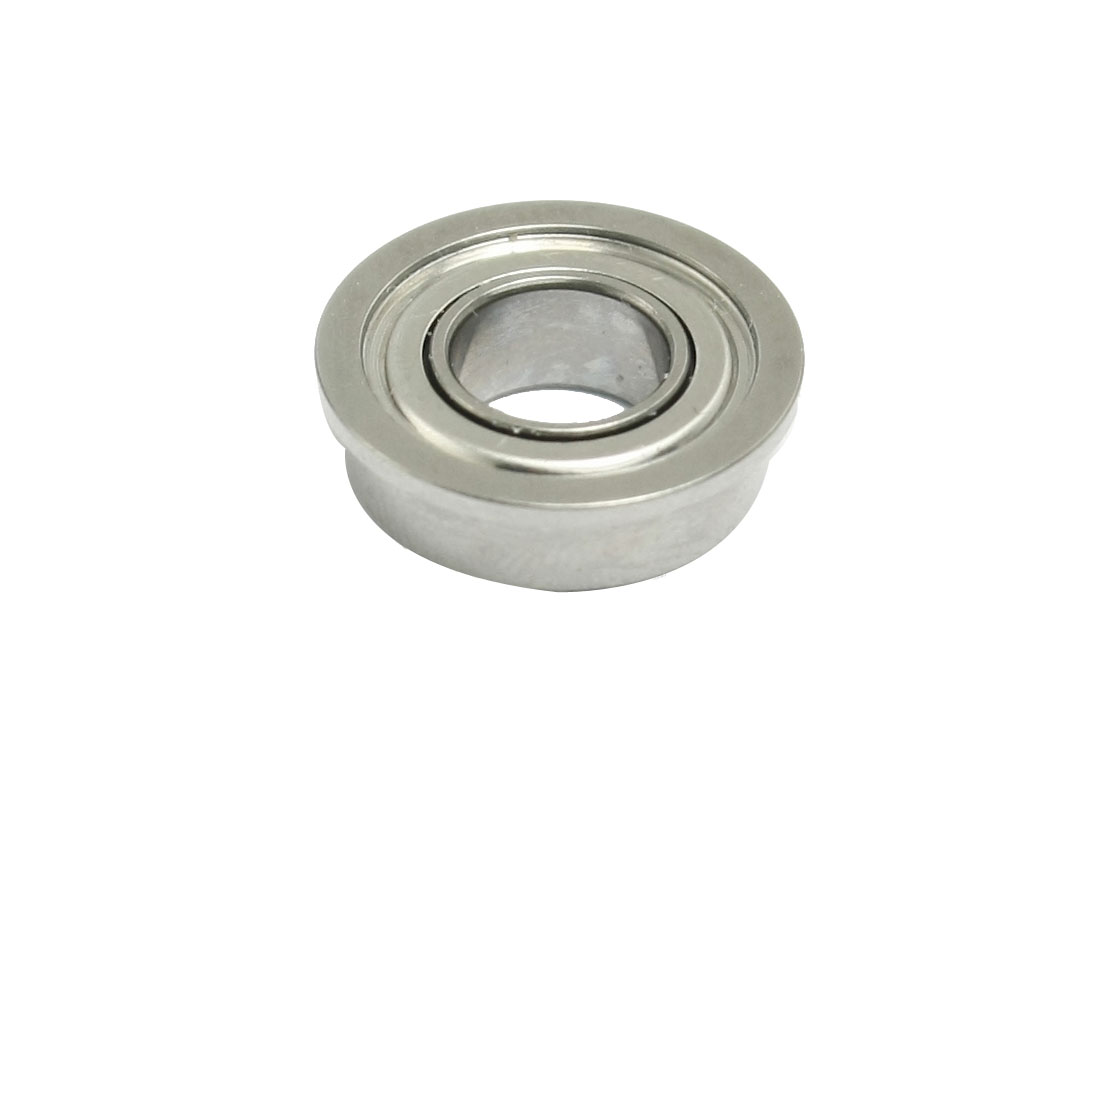 Radial Shielded 13mm x 6mm x 6mm Deep Groove Flanged Ball Bearing